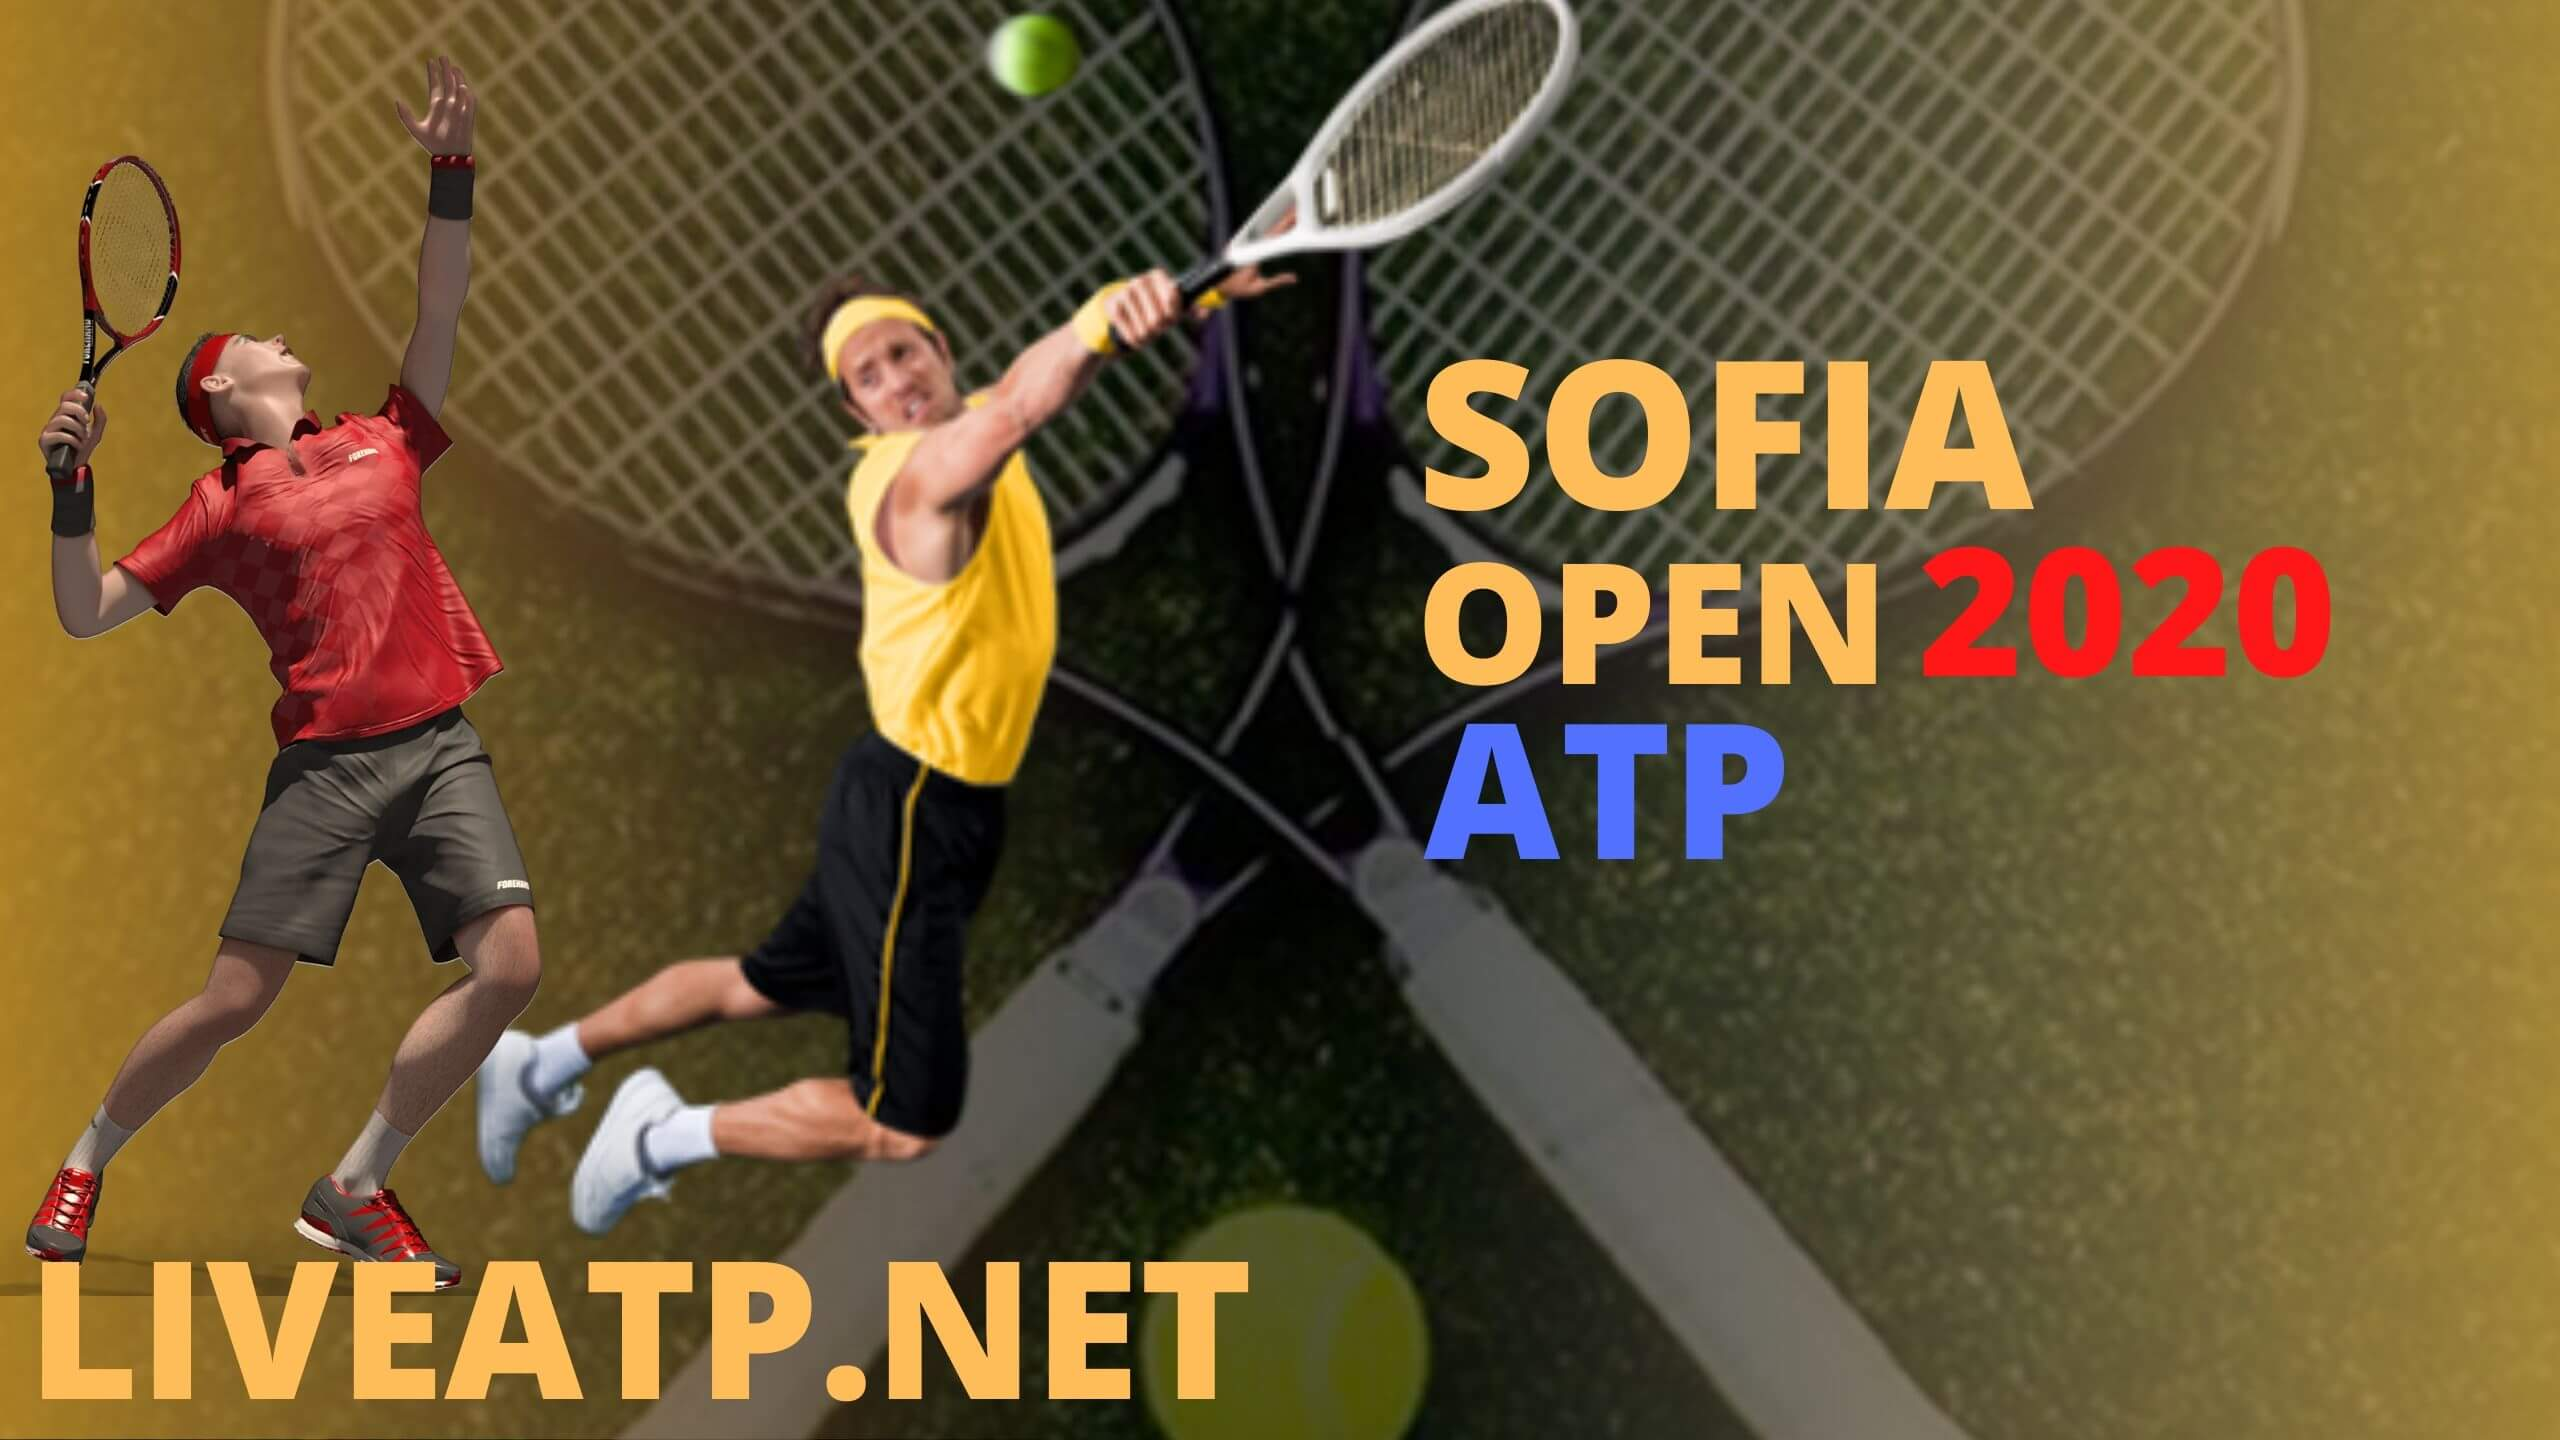 Sofia Open Live Stream 2020 | Semi Final